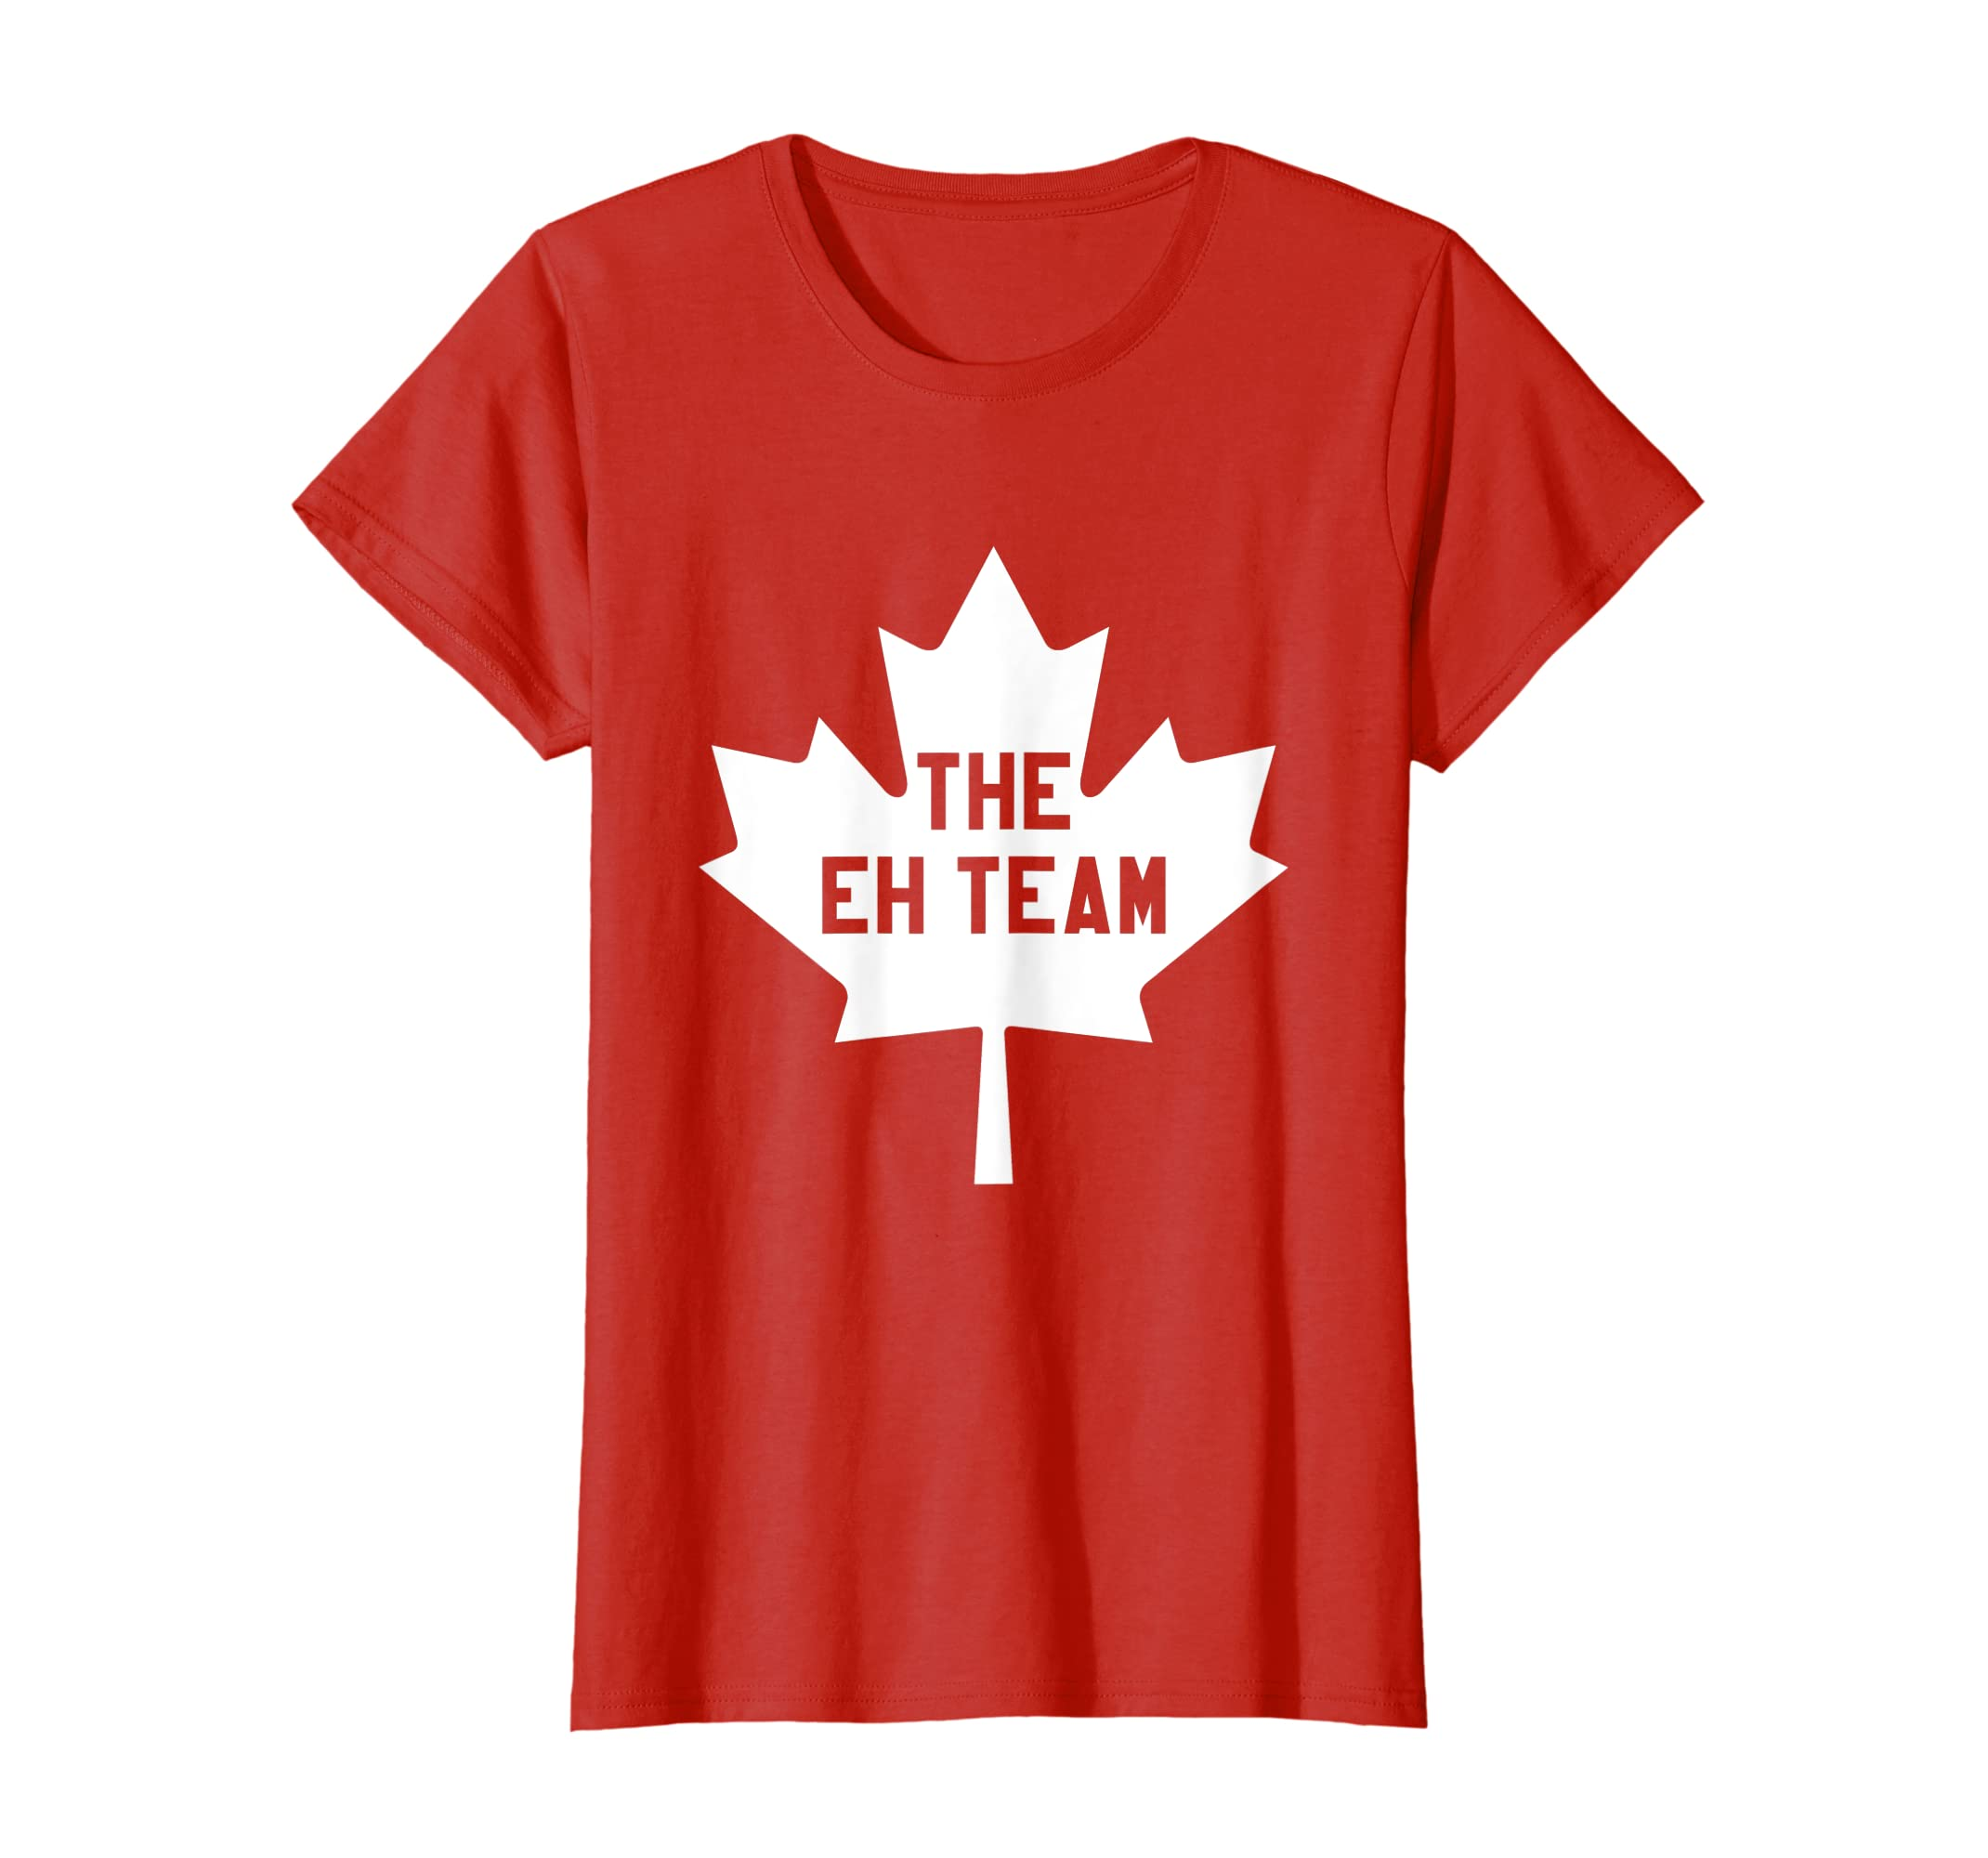 b4f07a87 Amazon.com: The Eh Team T-Shirt funny saying Sarcastic Canada Canadian:  Clothing